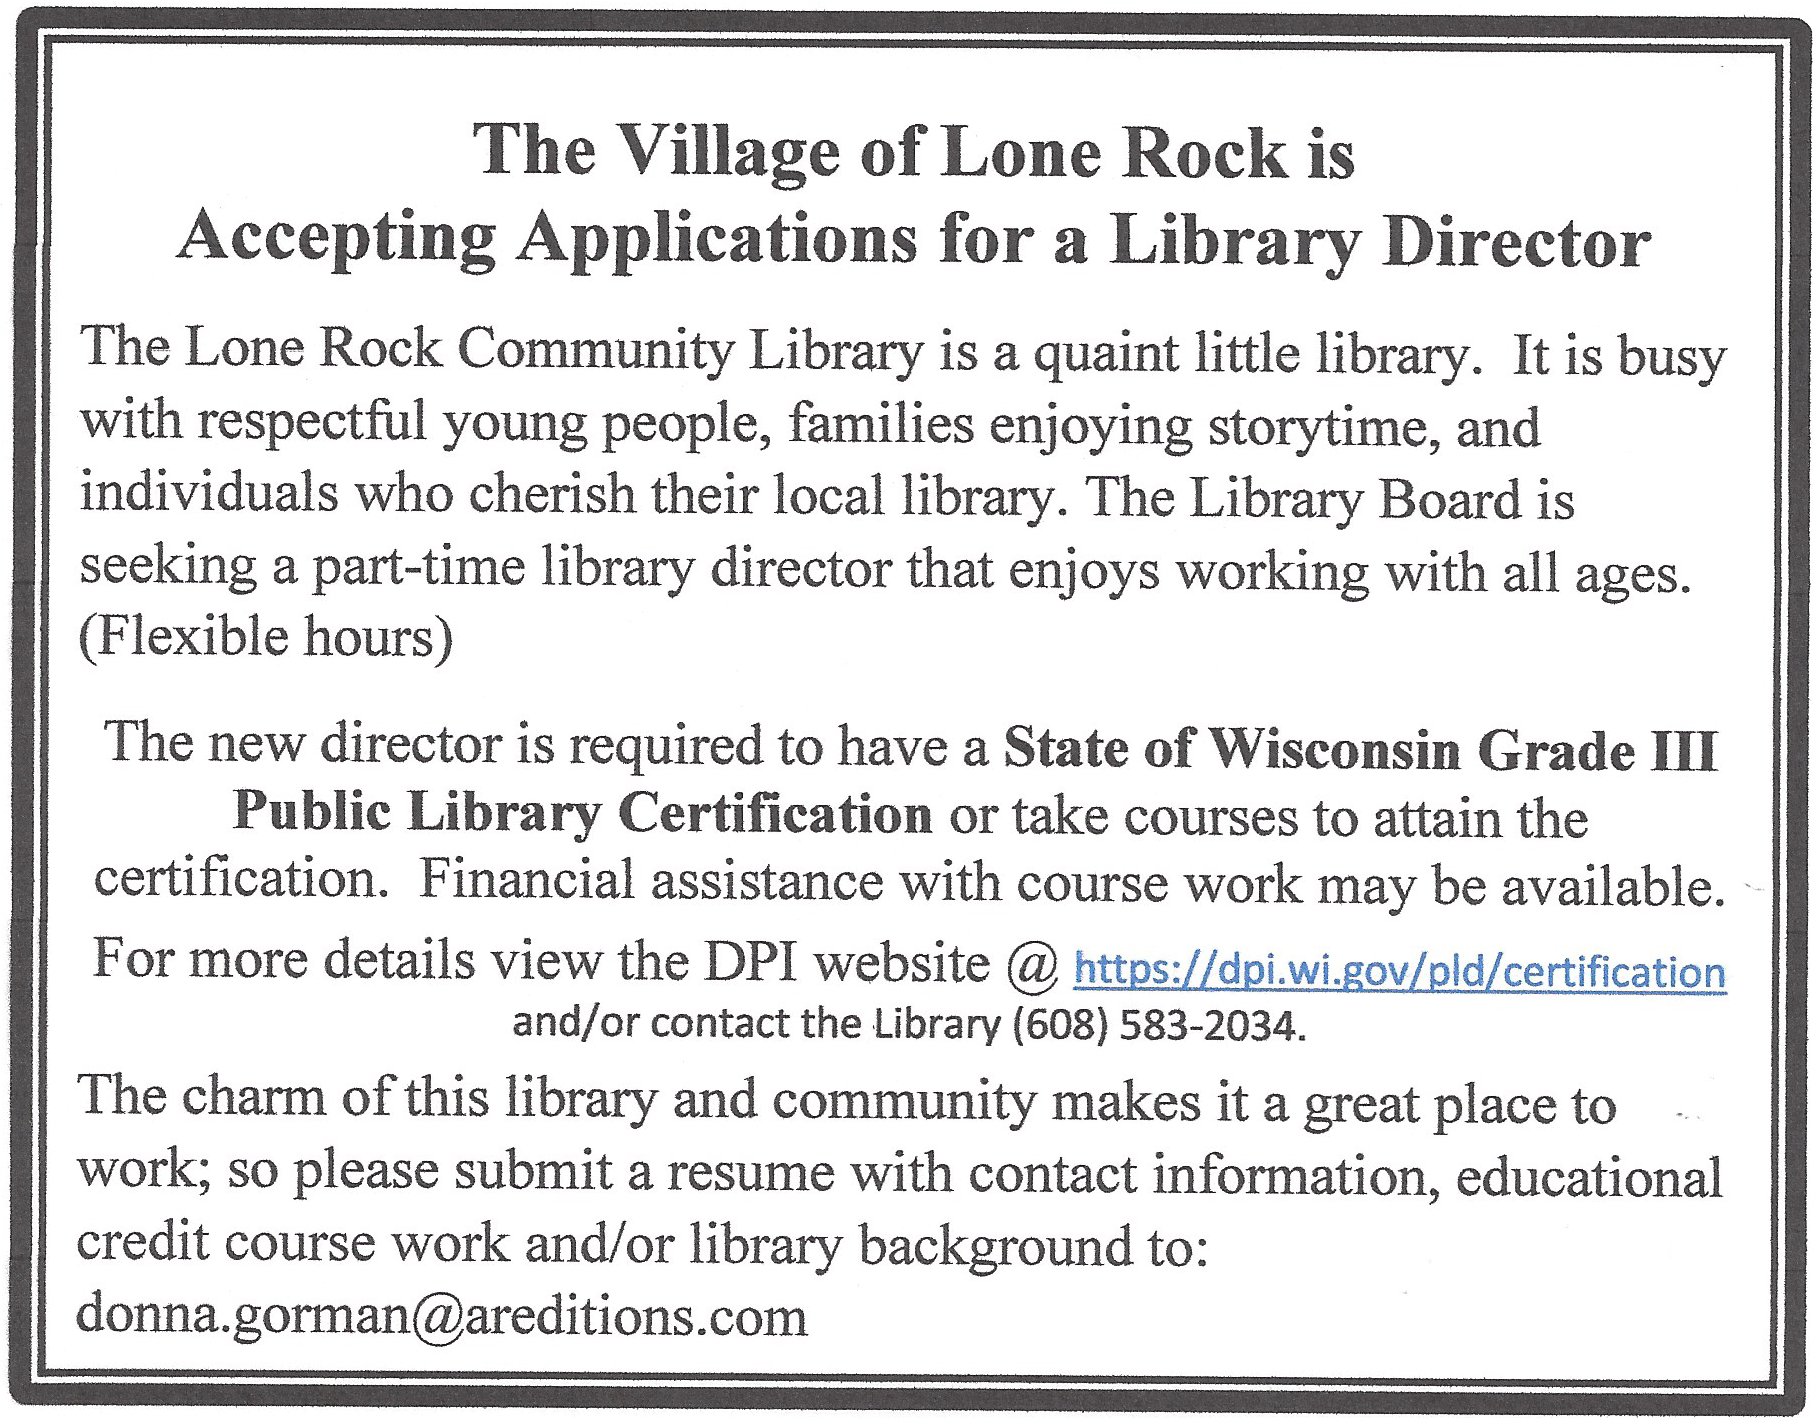 Image of advertisement for library director position at Lone Rock Community Library